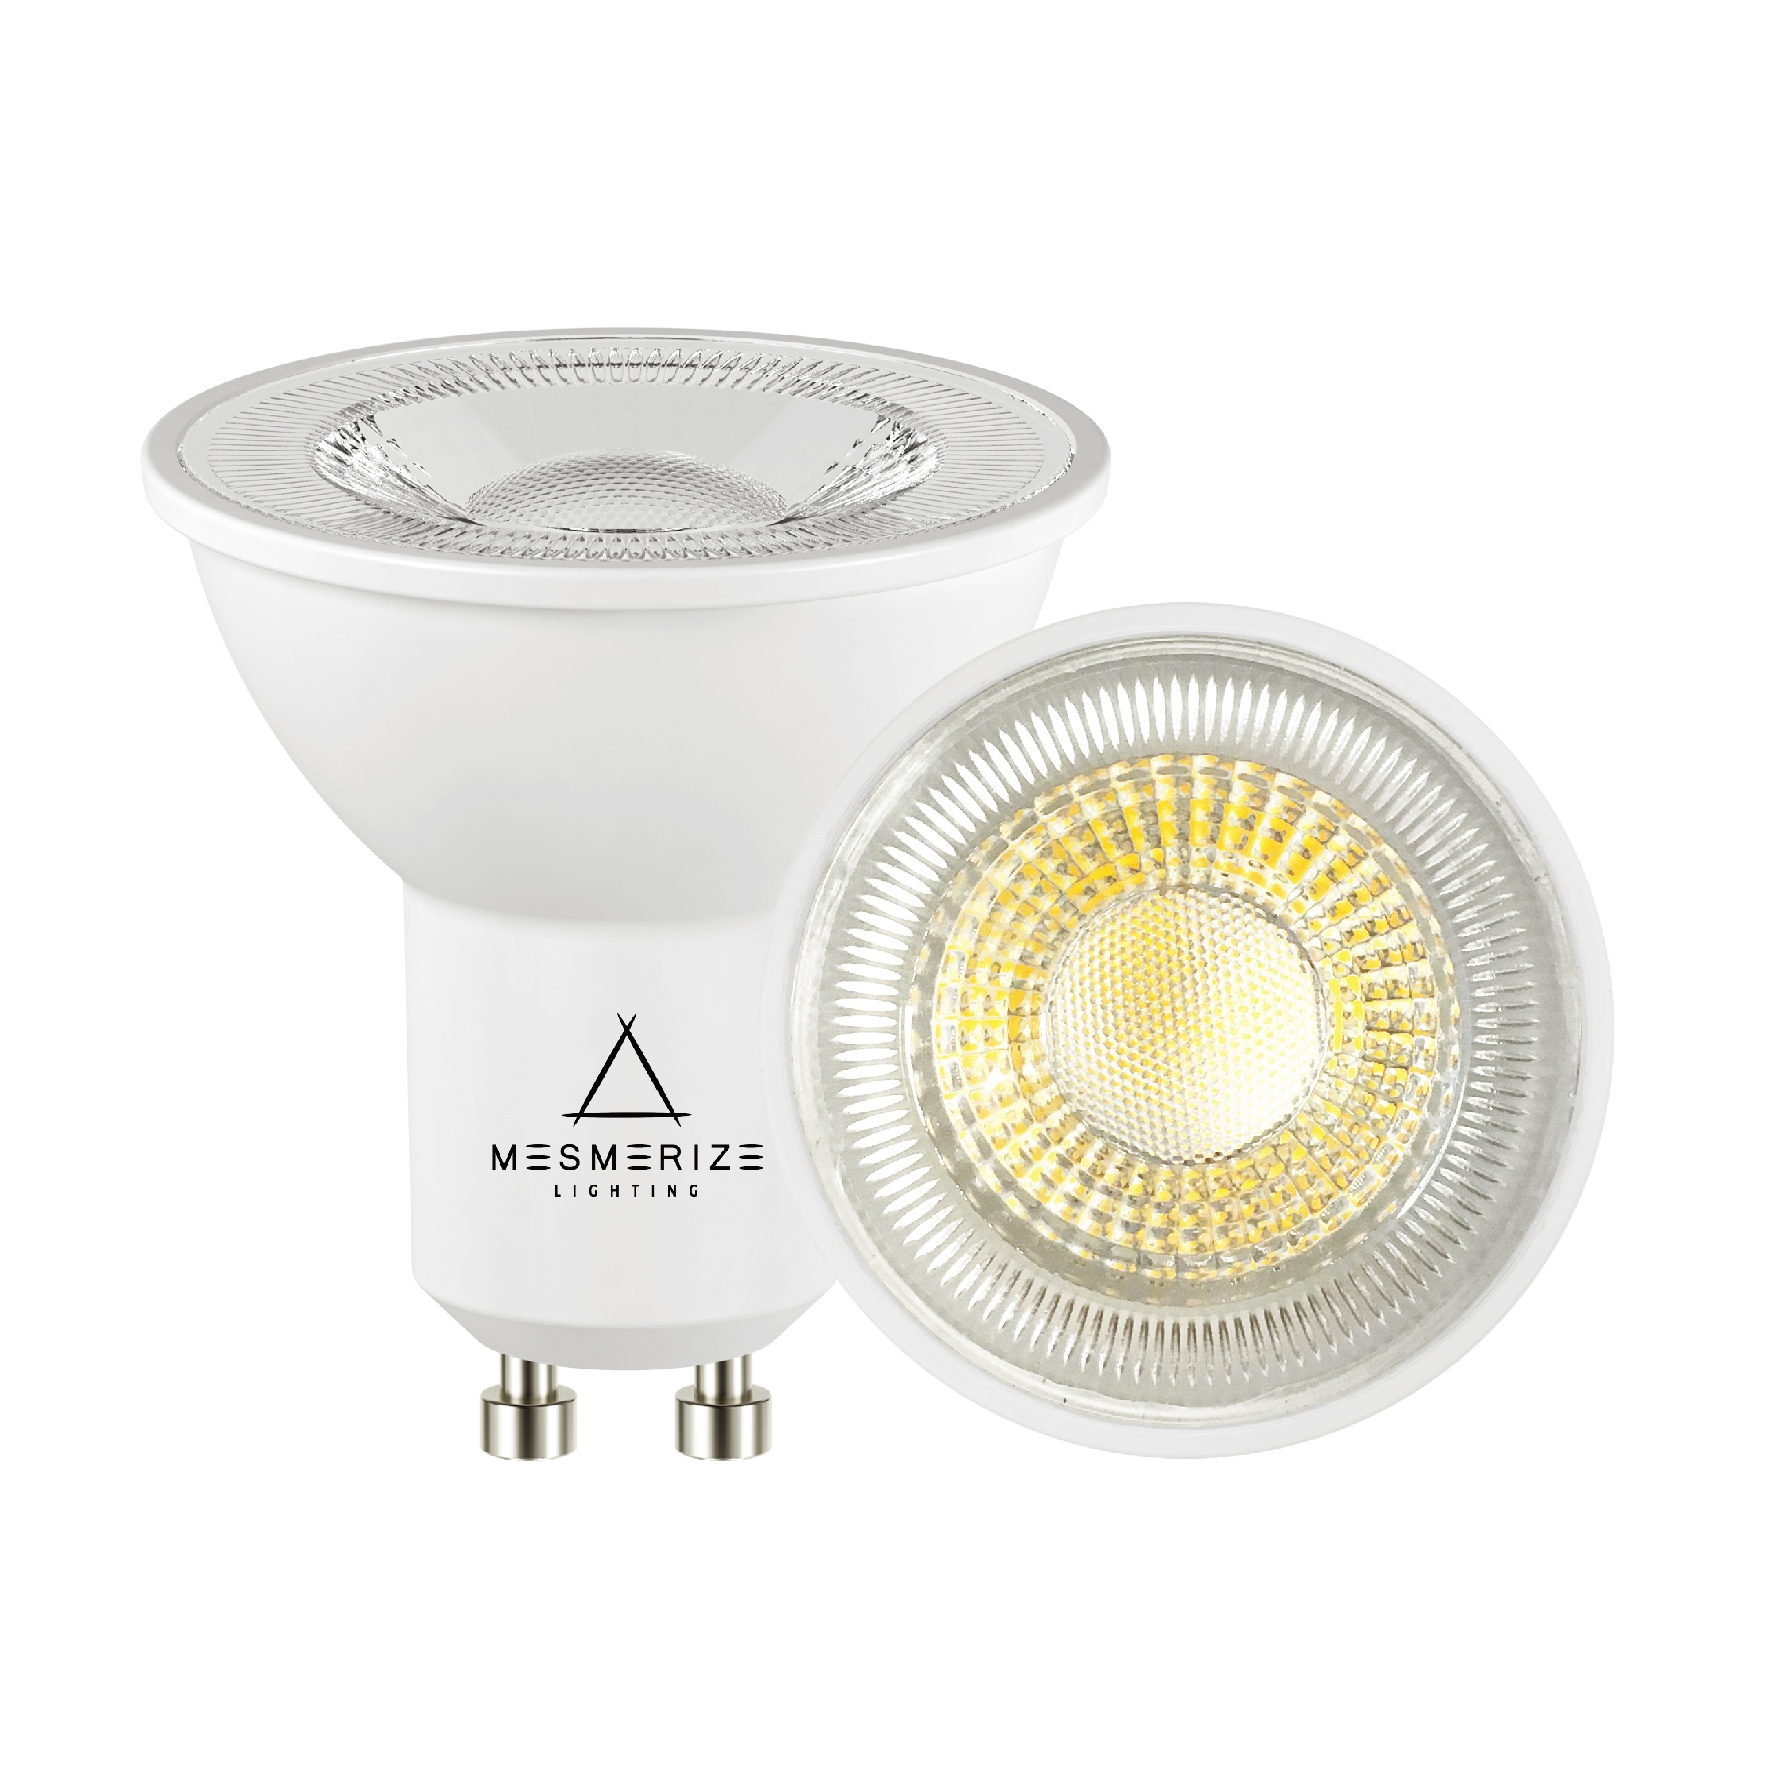 MESMERIZE DOWNLIGHT GU10 LED COMET 5.5W 4000K NATURAL WHITE DIMMABLE 570LM